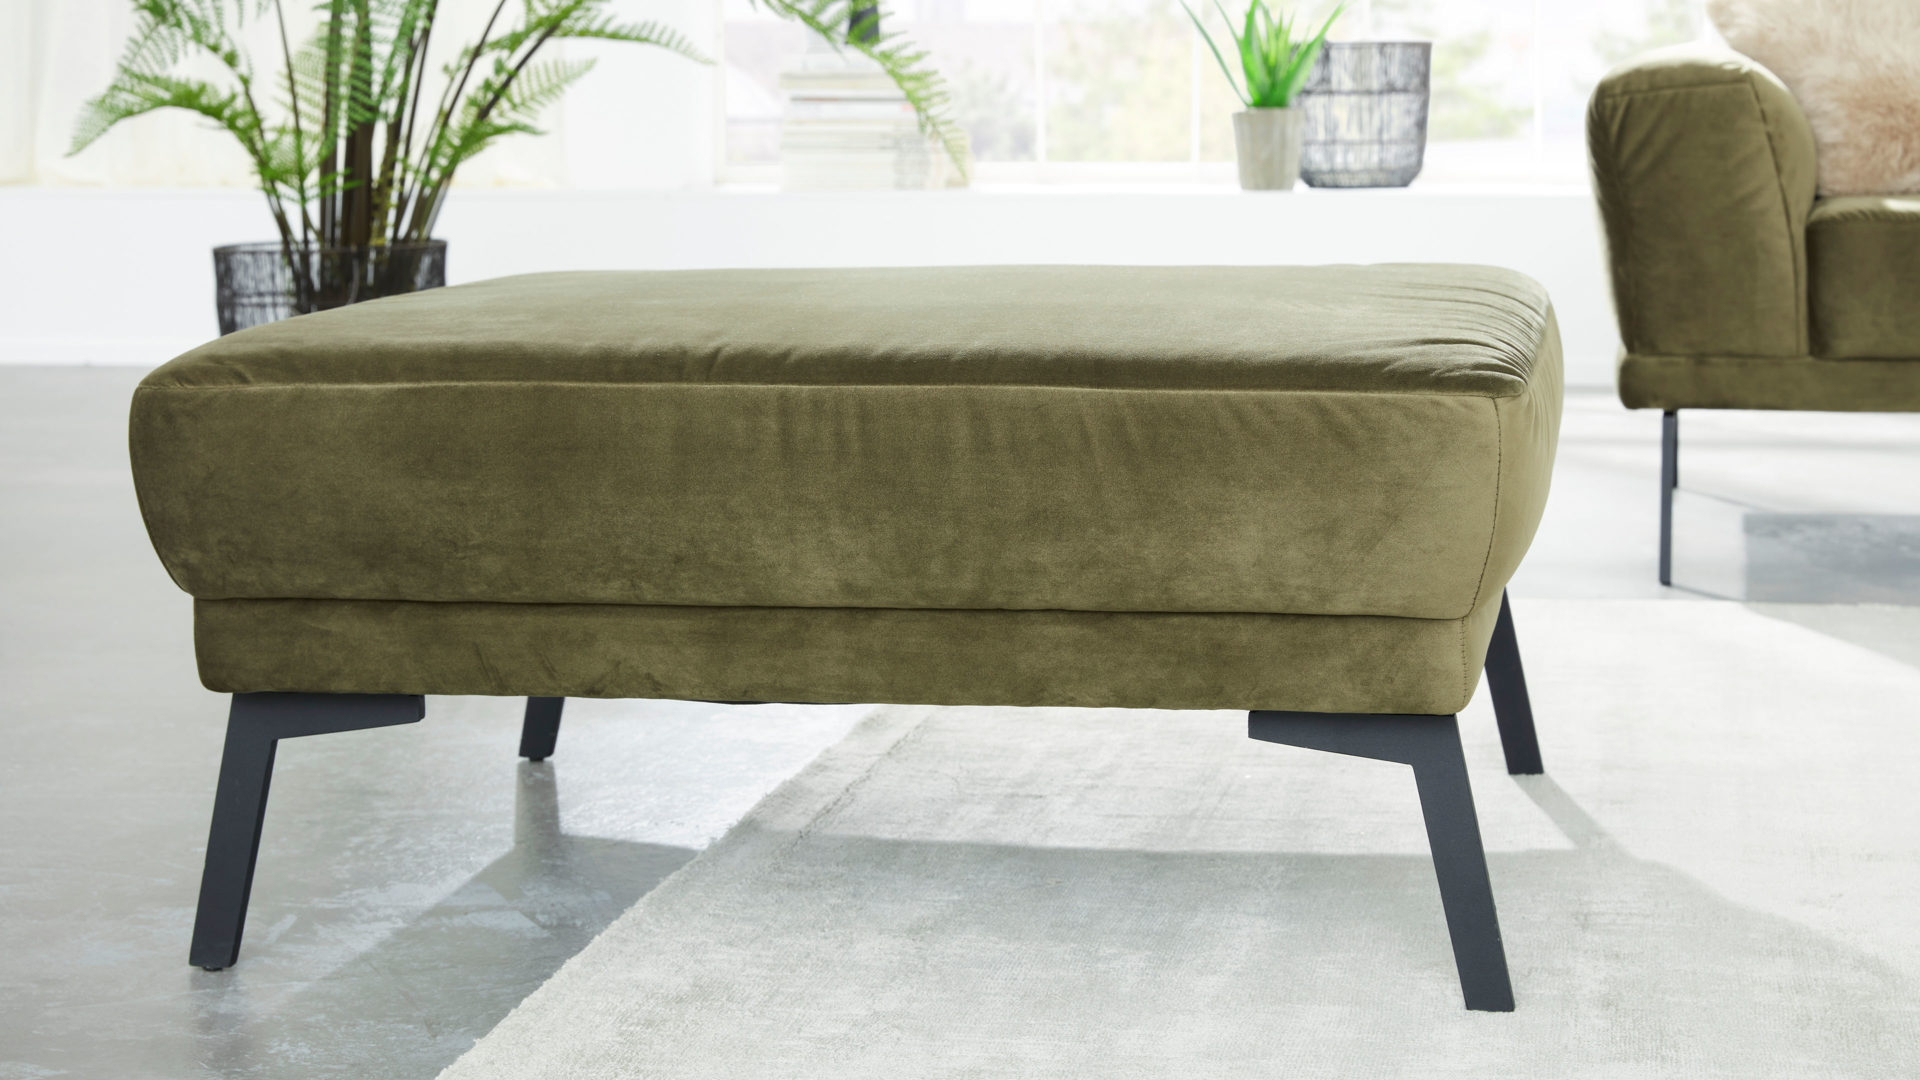 Polsterhocker Interliving aus Stoff in Beige Interliving Sofa Serie 4103 – XXL-Hocker olivfarbene Mikrofaser & mattschwarze Metallfüße - ca. 90 x 90 cm